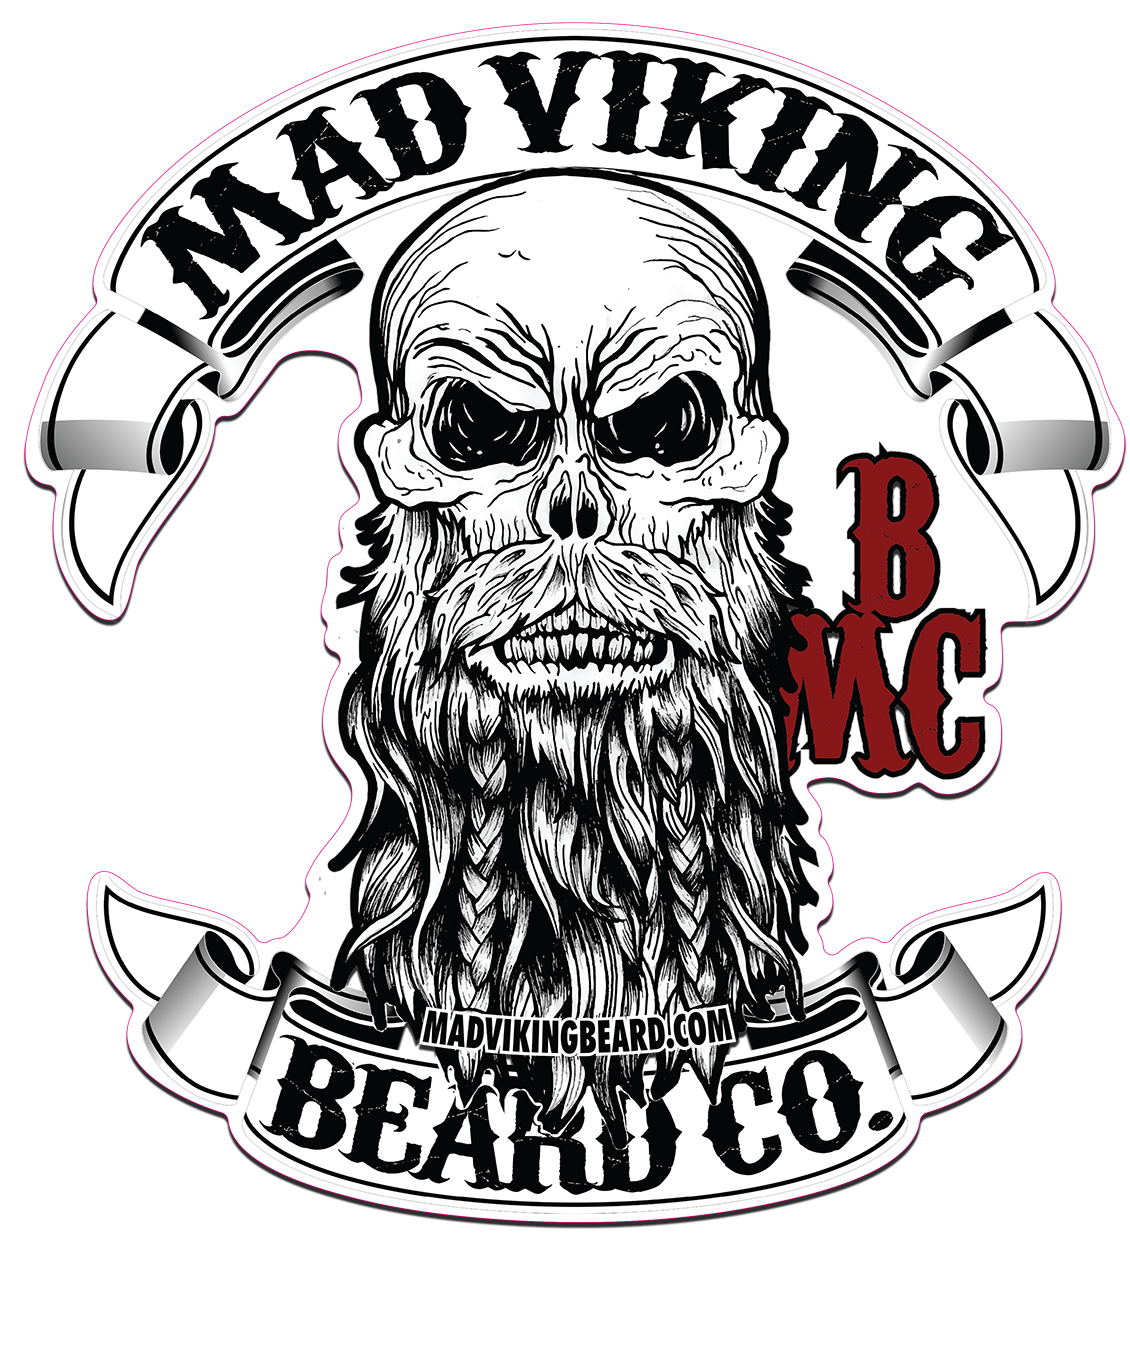 Mad viking logo sticker 11x12